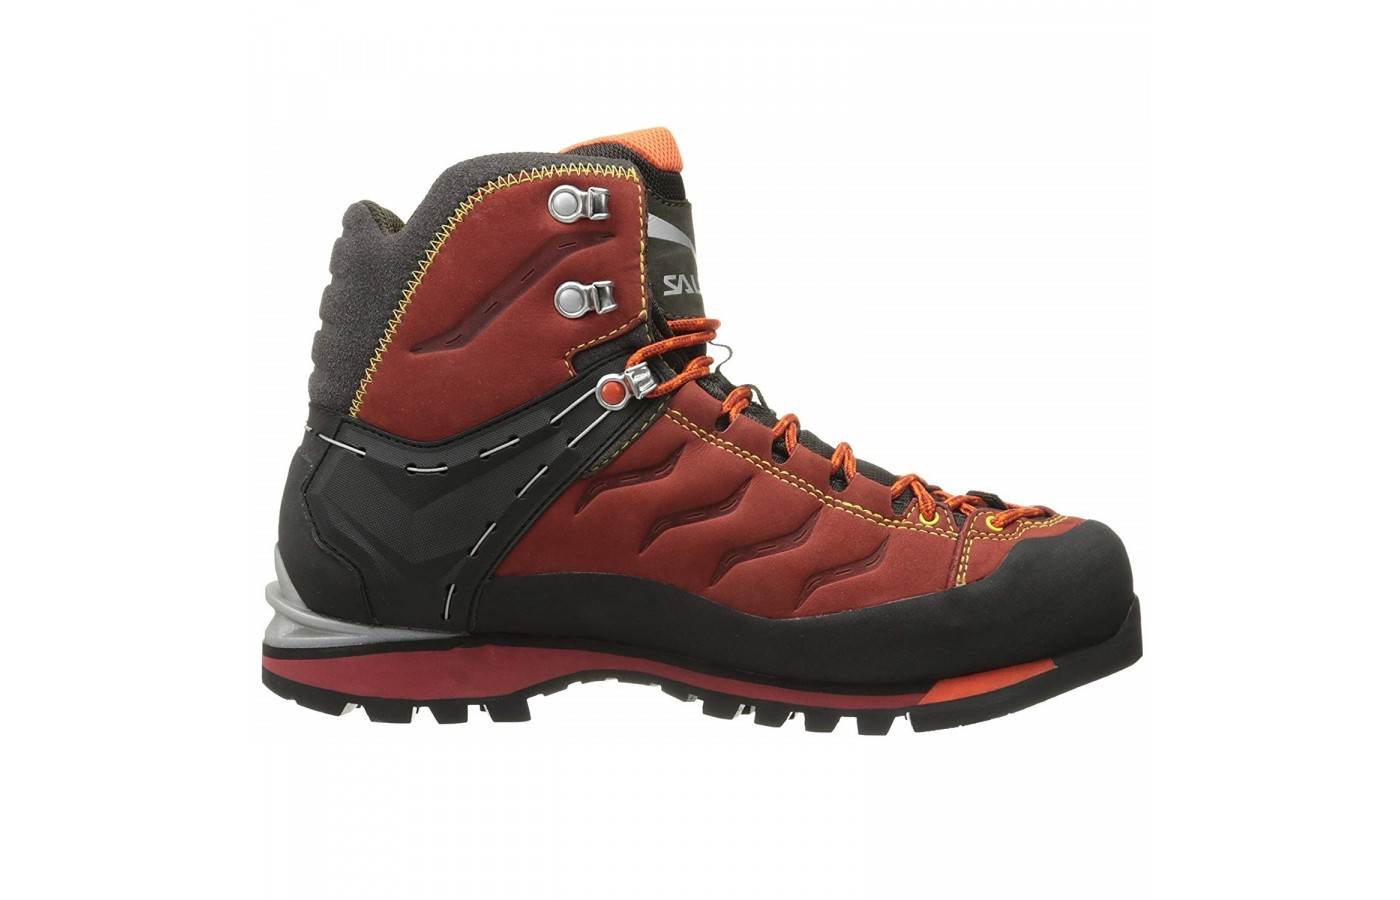 The Salewa Rapace GTX has 360° full rubber rand for protection from wear and tear along the trails.